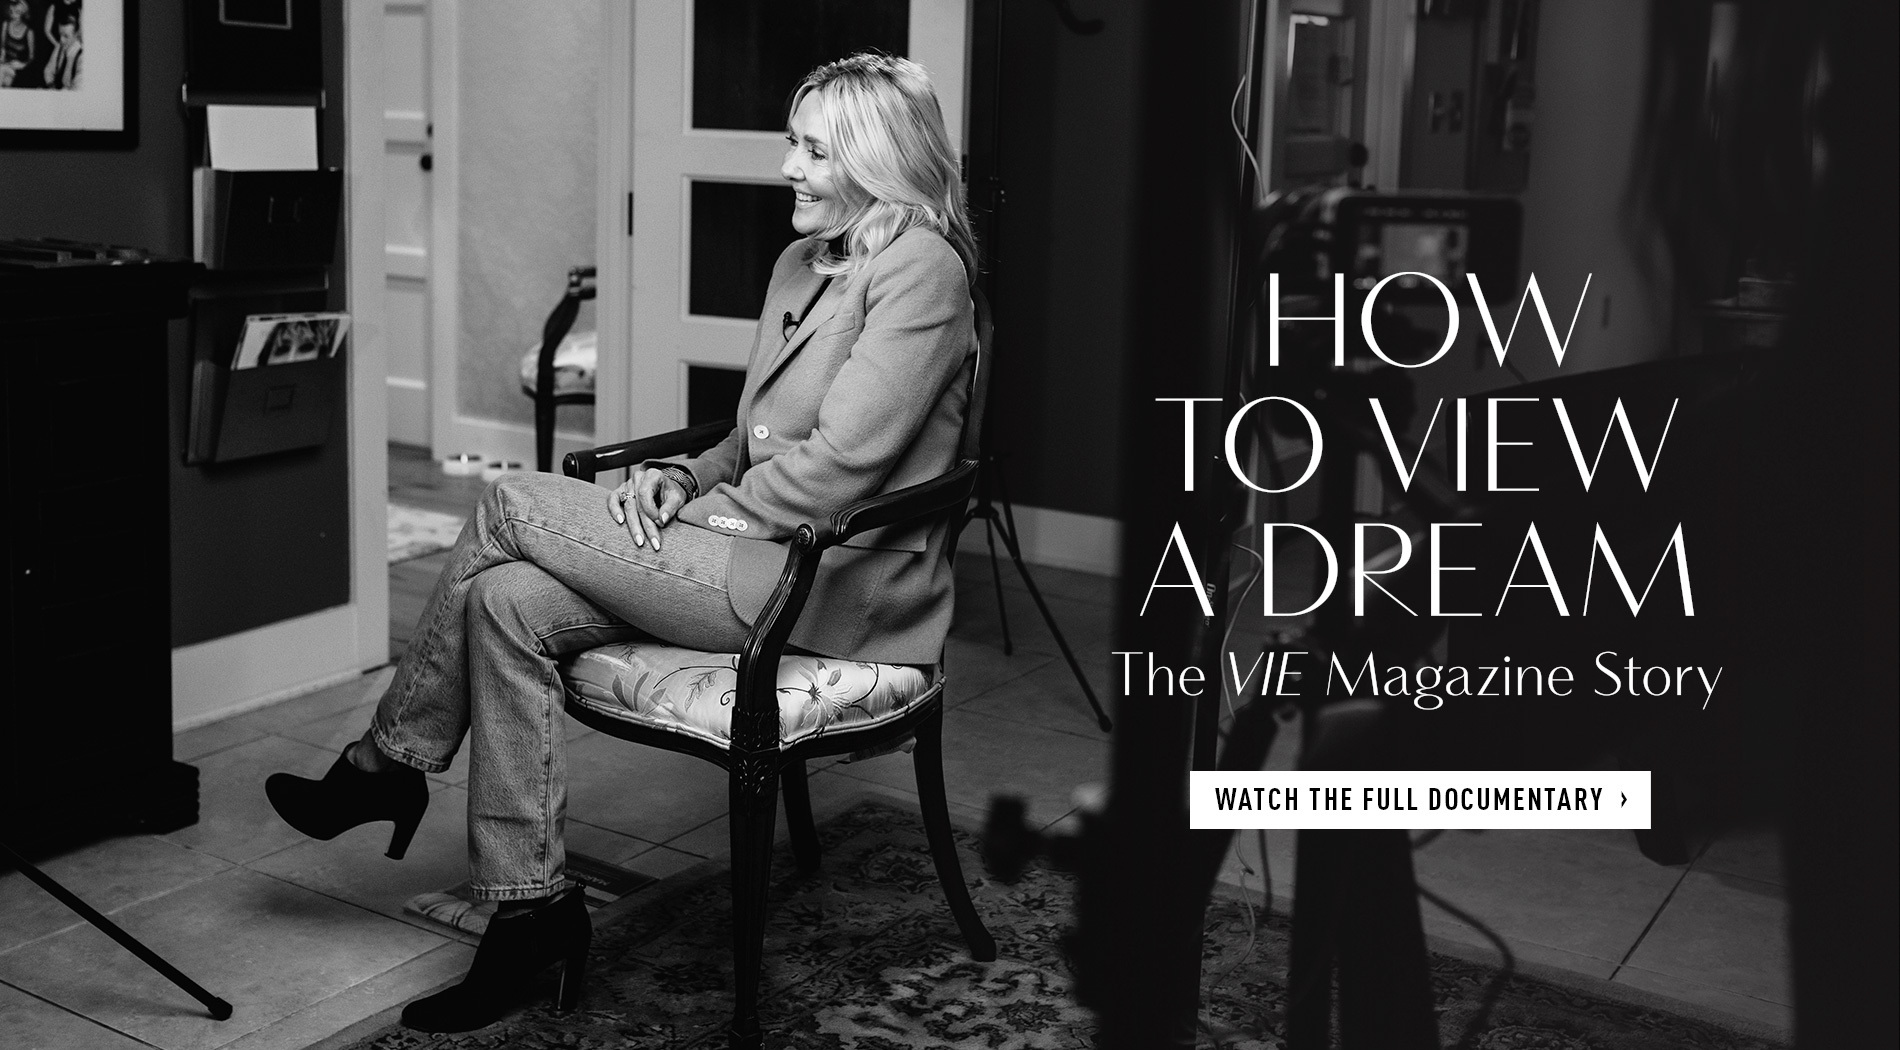 VIE magazine, The Idea Boutique, VIE Magazine Documentary, How to VIEw a Dream, AlohaBorah Media, Micaiah and Deborah Smoots, Andy Saczynski, Dave Rauschkolb, Jane Hamon